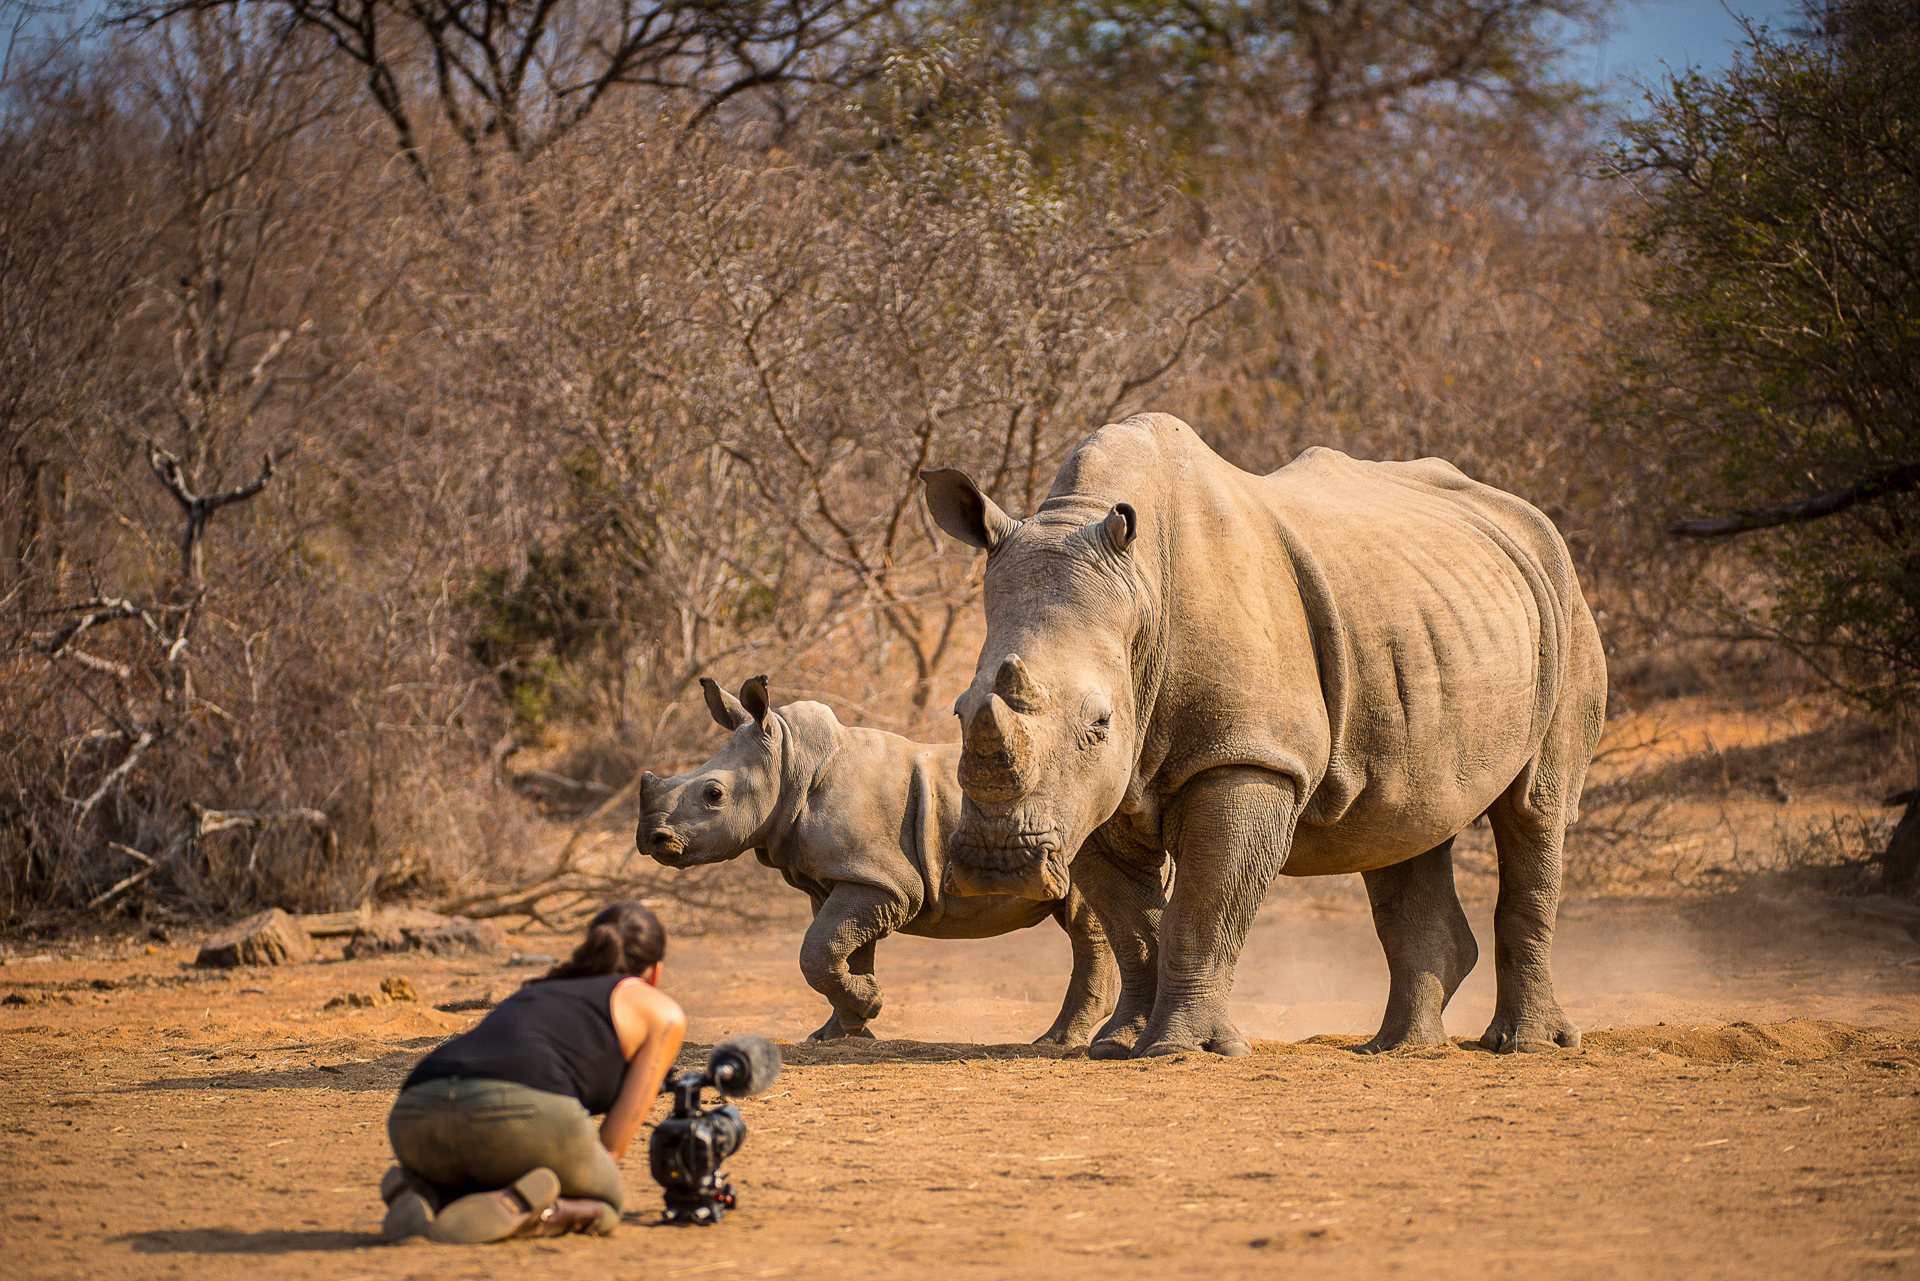 Image of Shannon Benson filming rhinos by Russell MacLaughlin